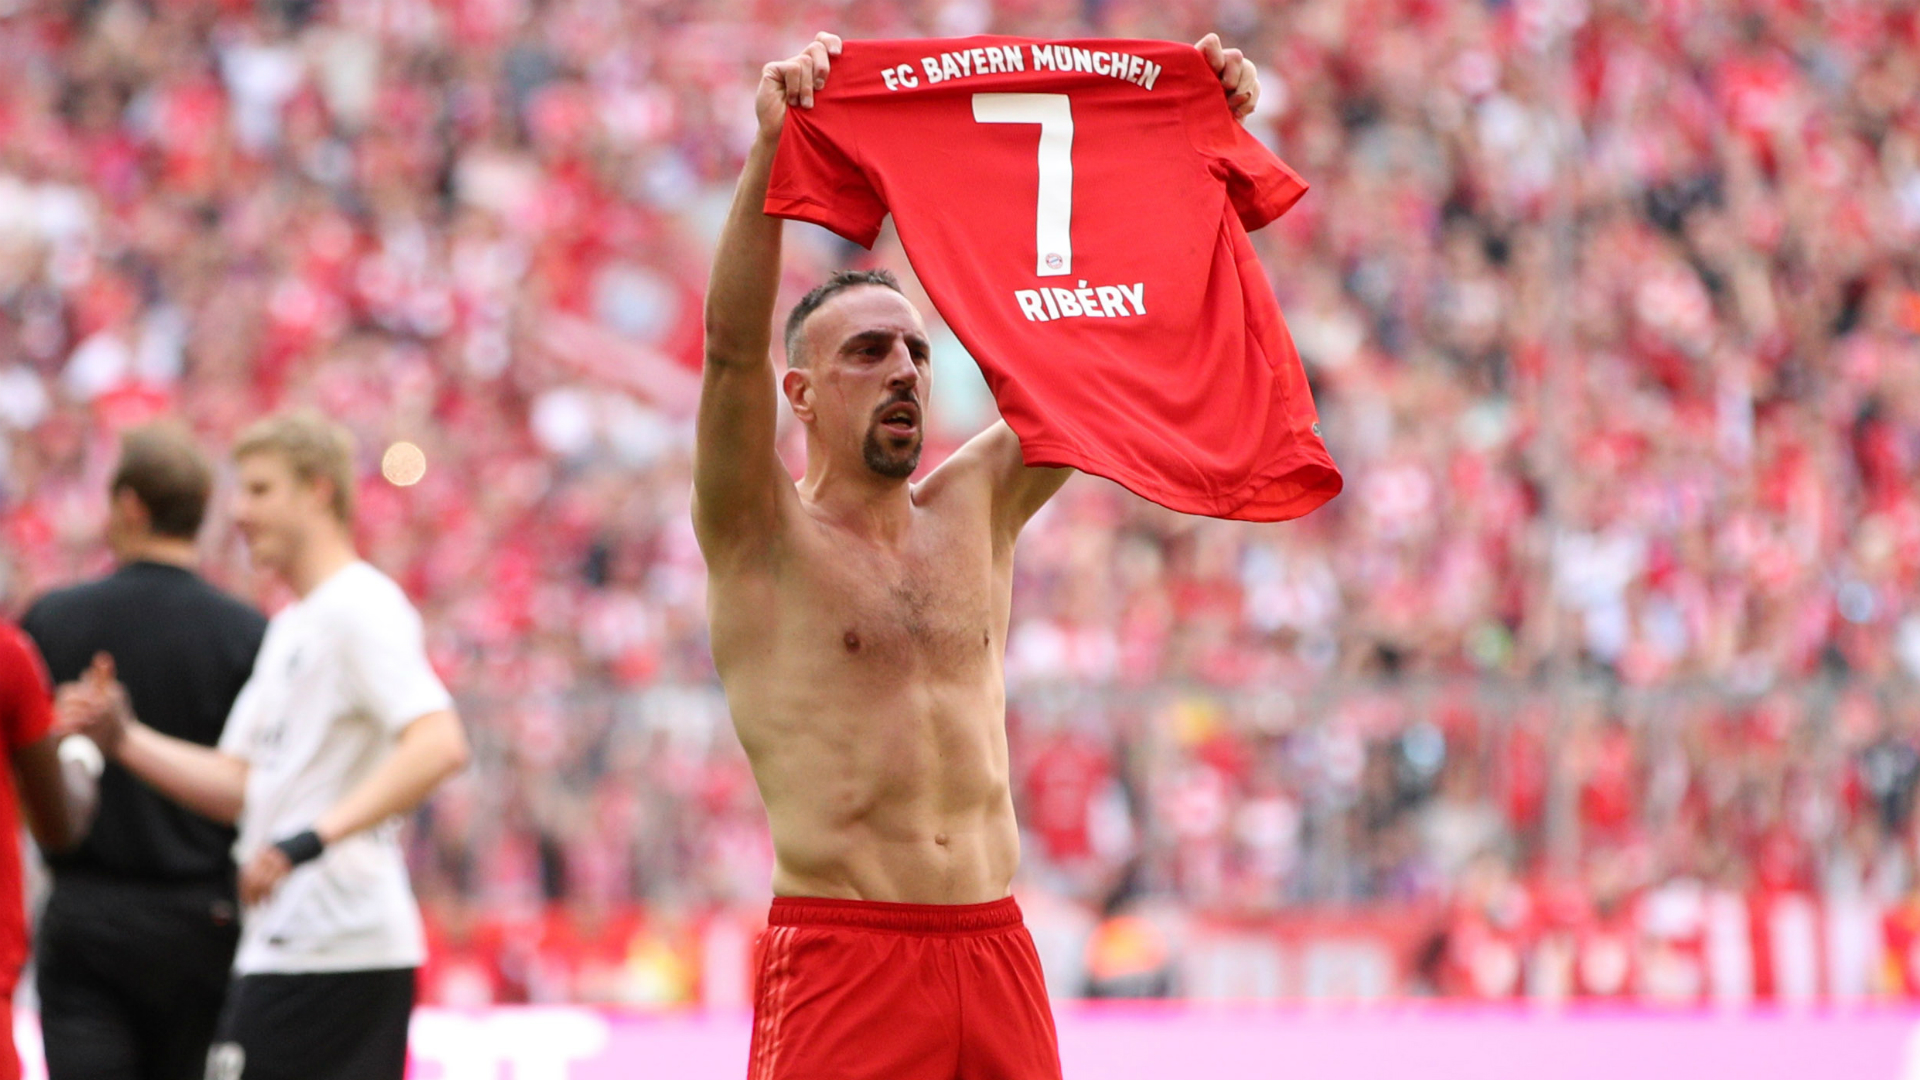 My last great moment at Allianz Arena – Ribery revels in Bundesliga triumph